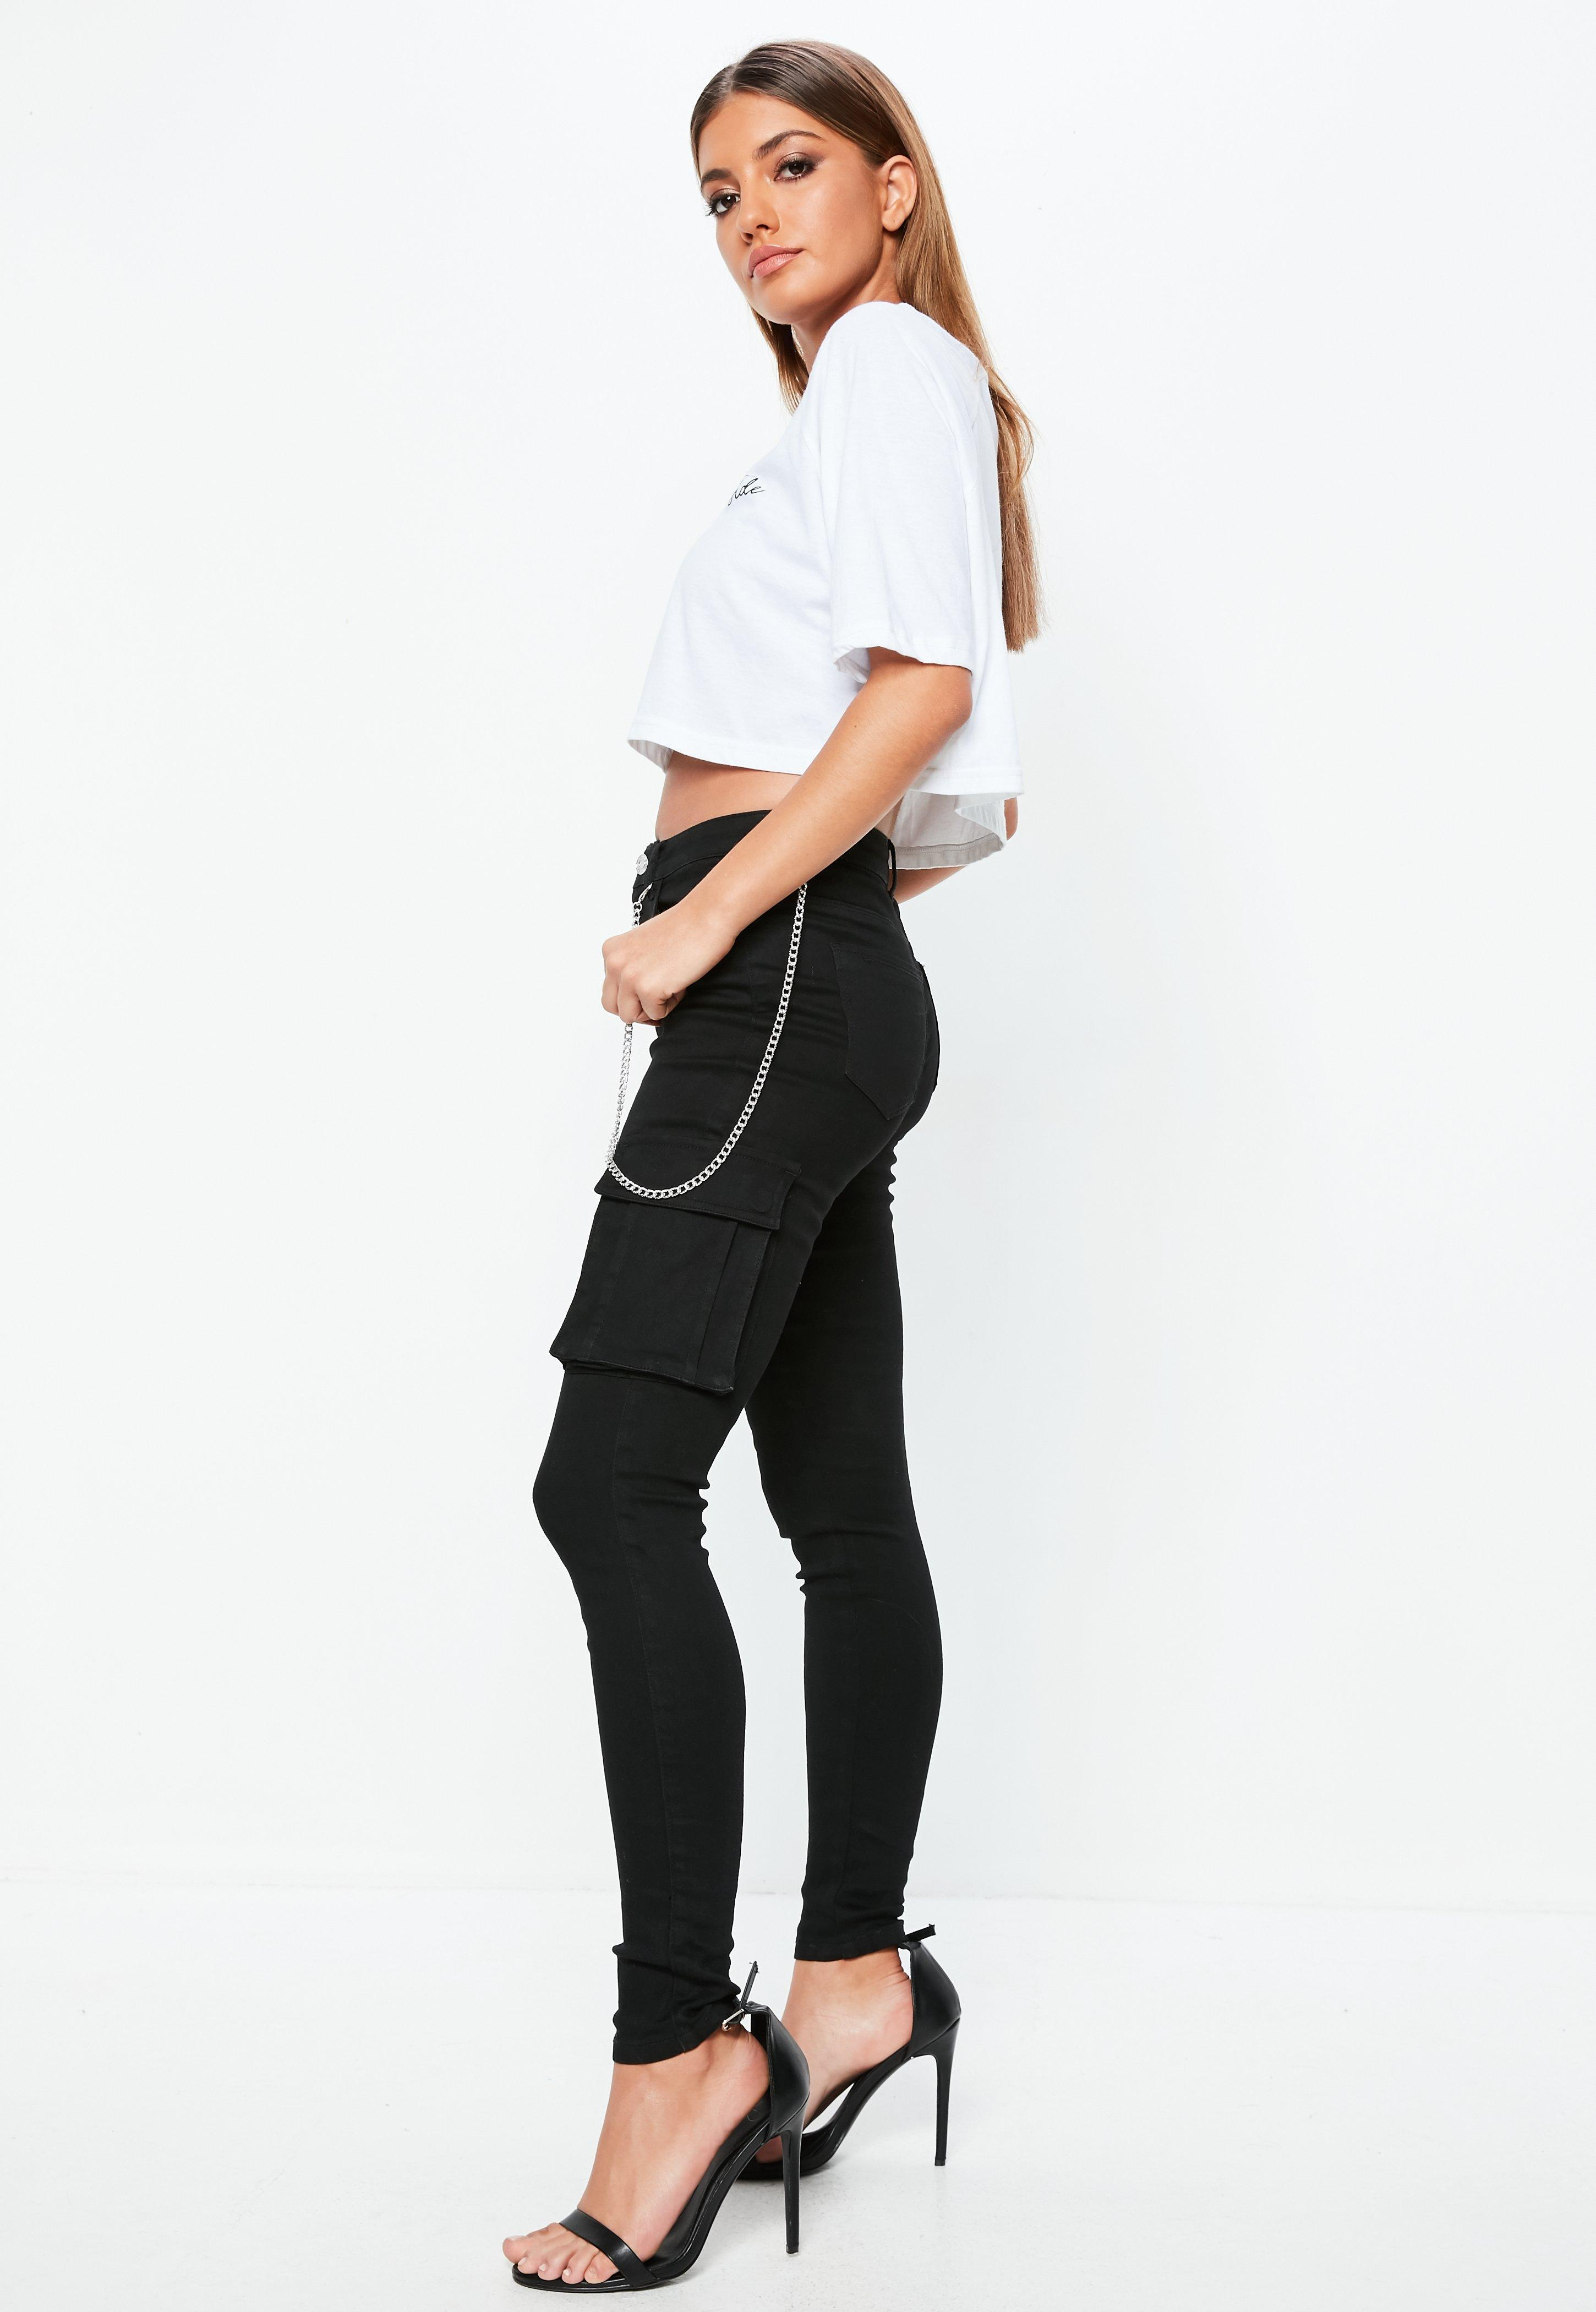 Missguided Black Sinner Highwaisted Combat Chain Jeans in Black - Lyst 3a7bbb40cccf